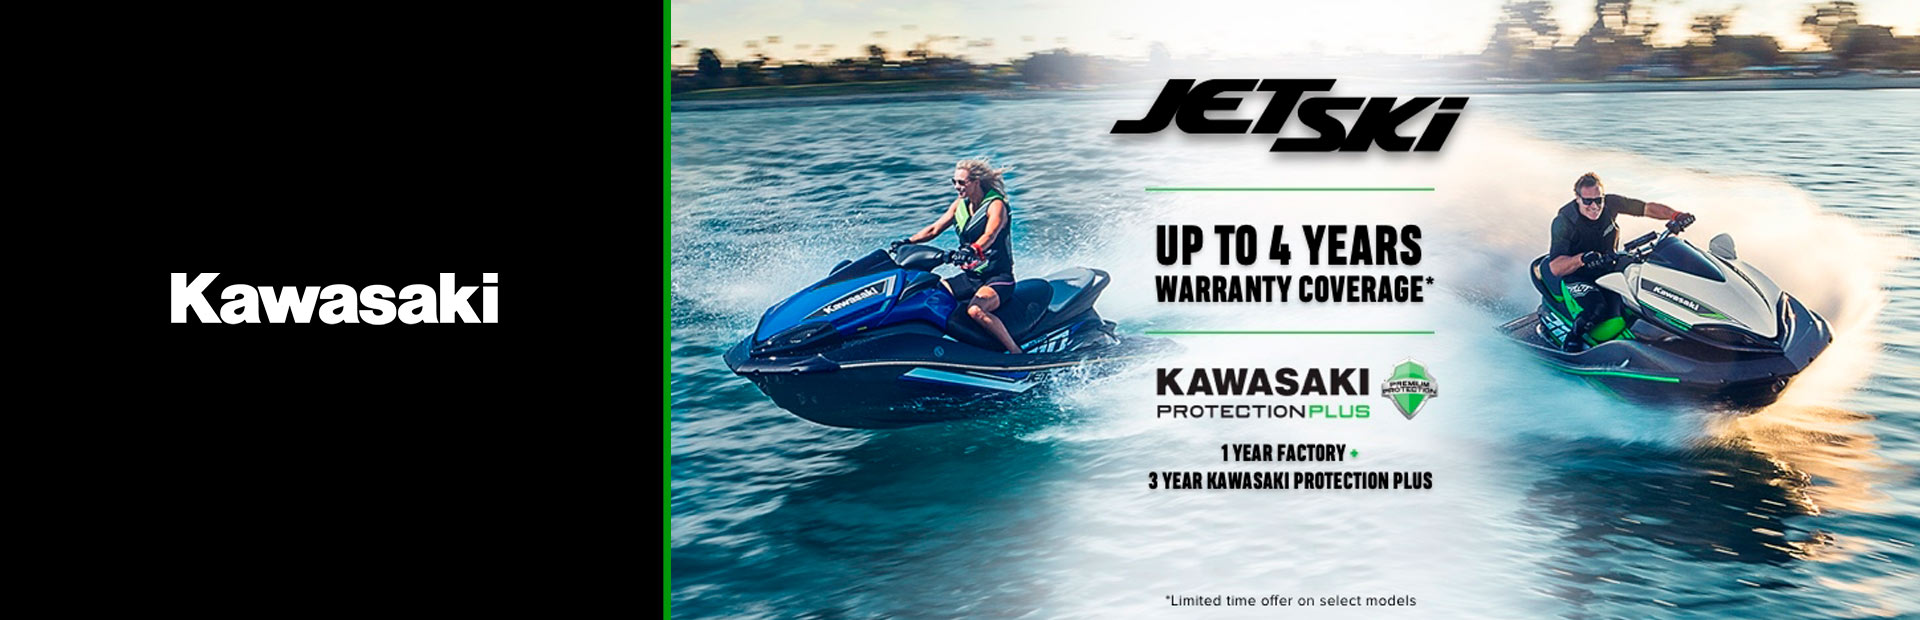 KAWASAKI JET SKI PROTECTION PLUS